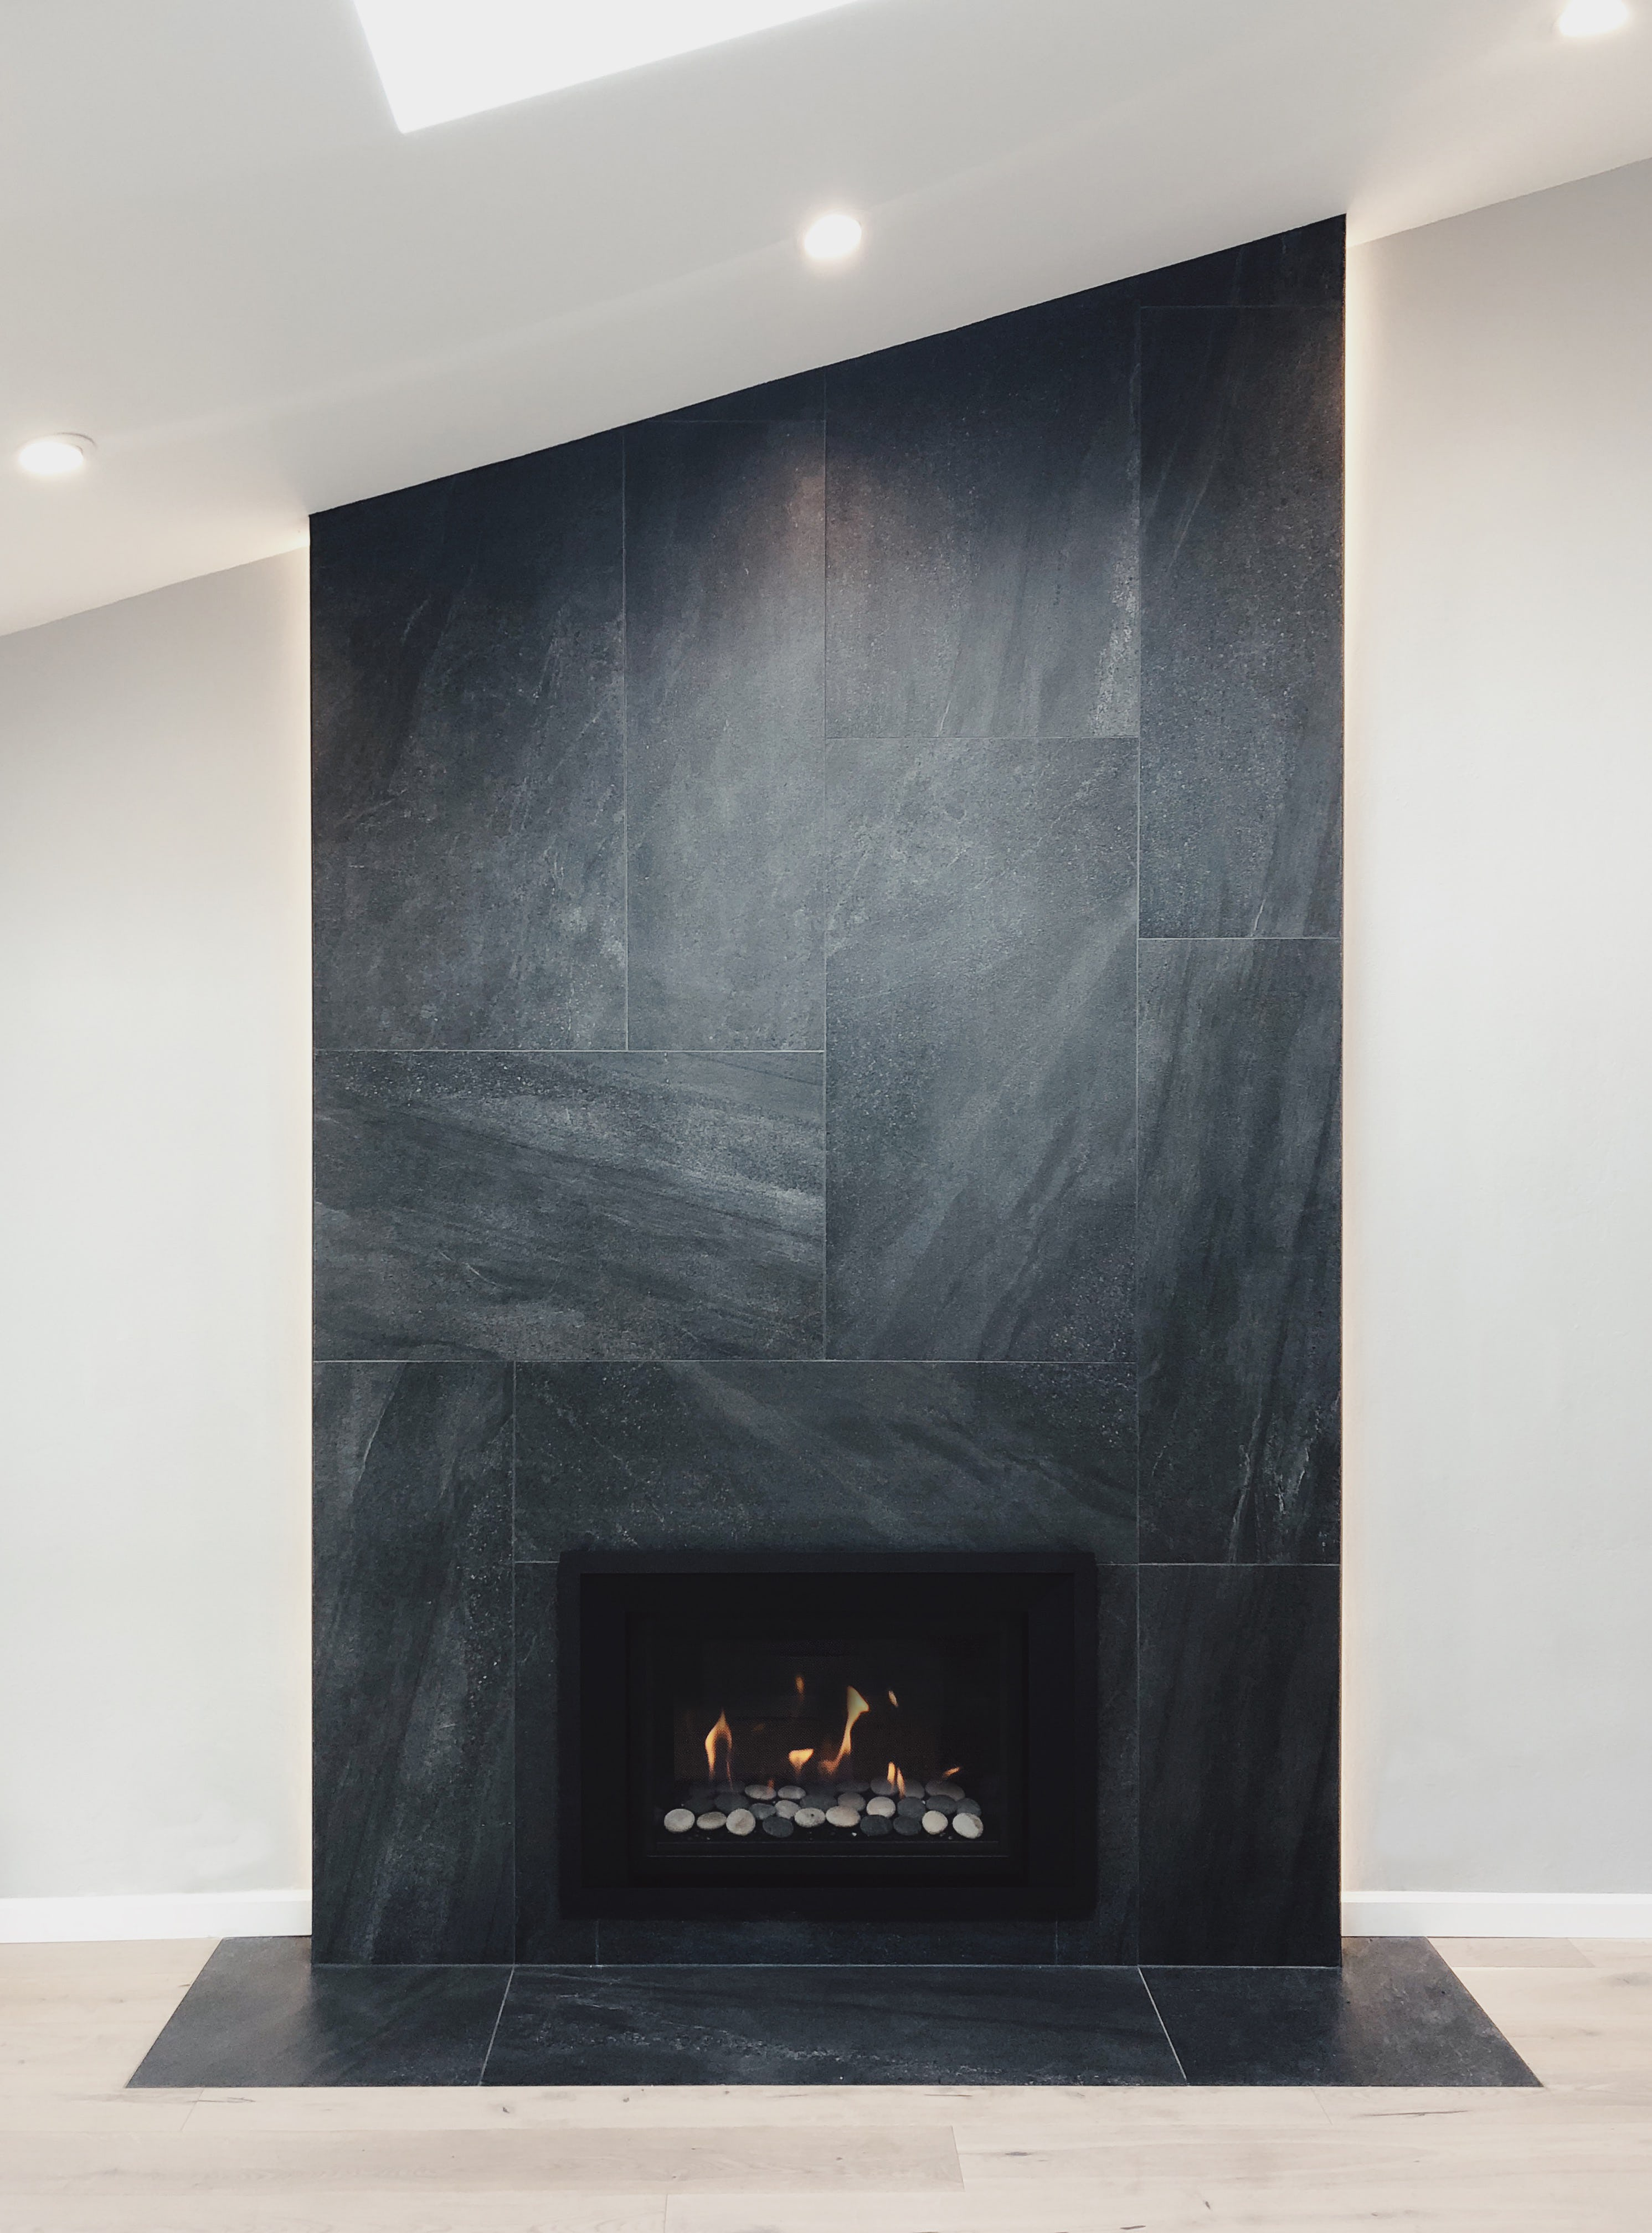 Iso ideas south bay house living room fireplace 1